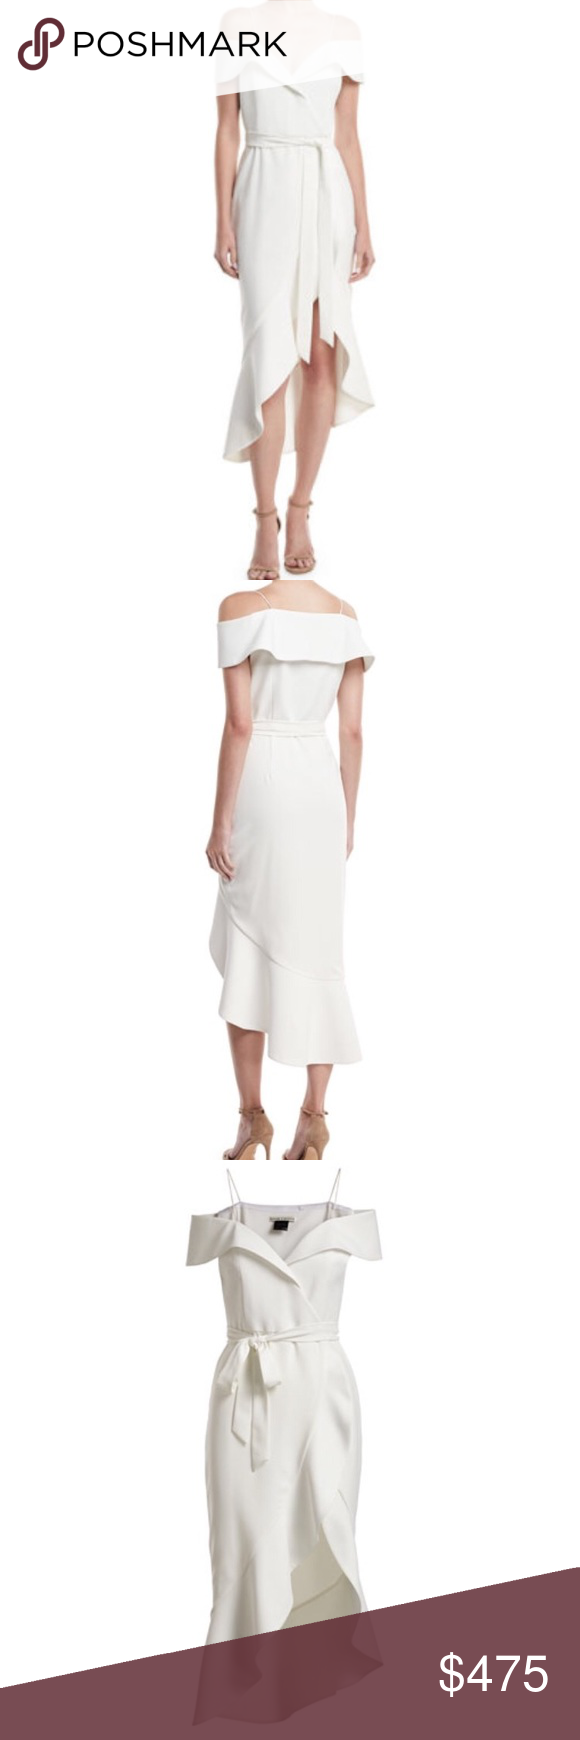 "2548aac4302 Alice + Olivia Josie Off Shoulder Wrap Dress From Alice   Olivia  ""The Josie  off-the-shoulder white wrap dress is carefully tailored for an incredibly  ..."